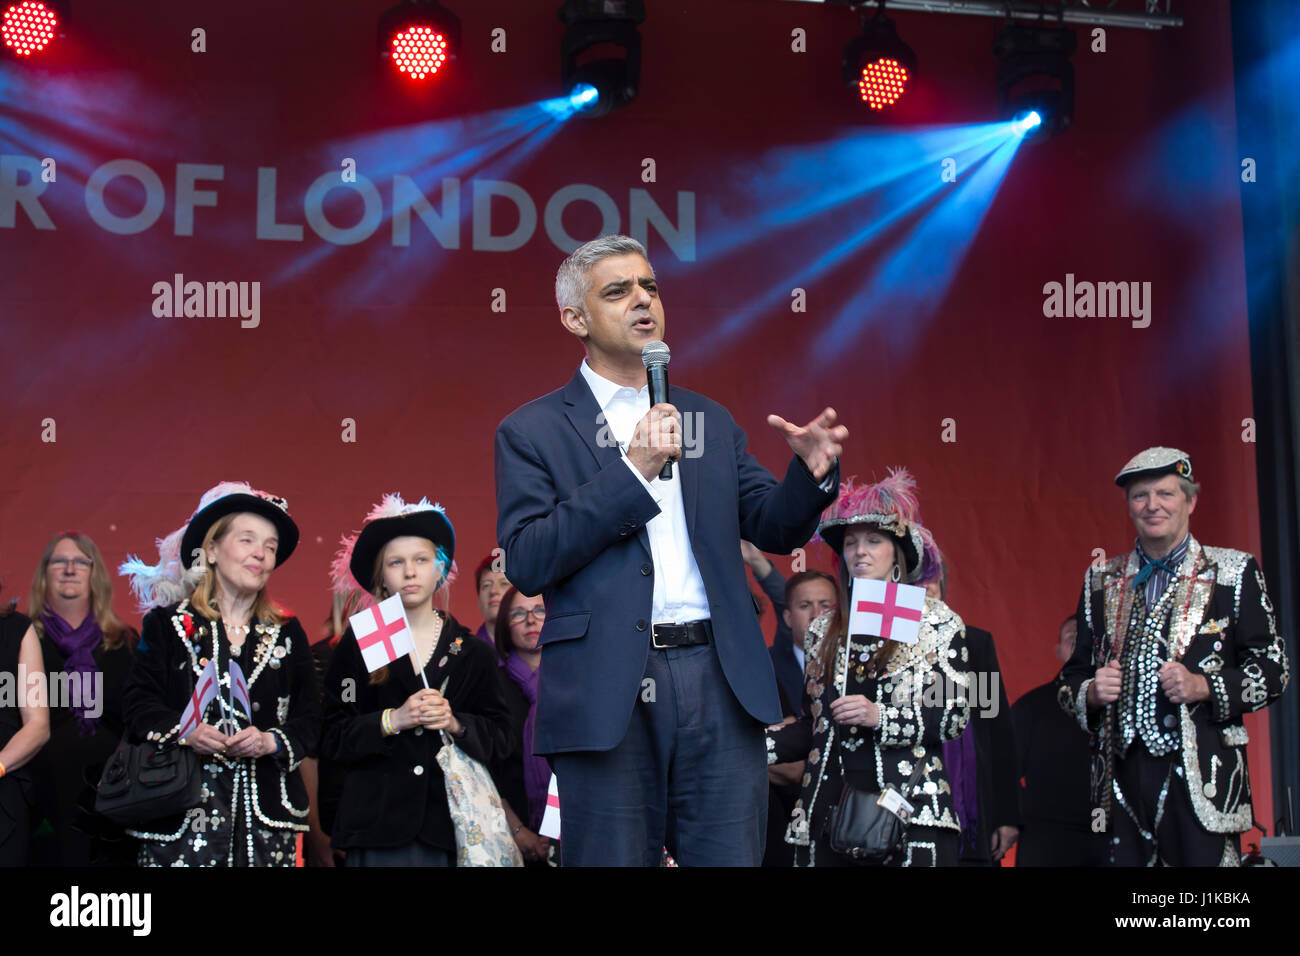 London, UK. 22nd Apr, 2017. Sadiq Khan, Mayor of London attends the annual St George's Day Feast in Trafalgar Square. Stock Photo